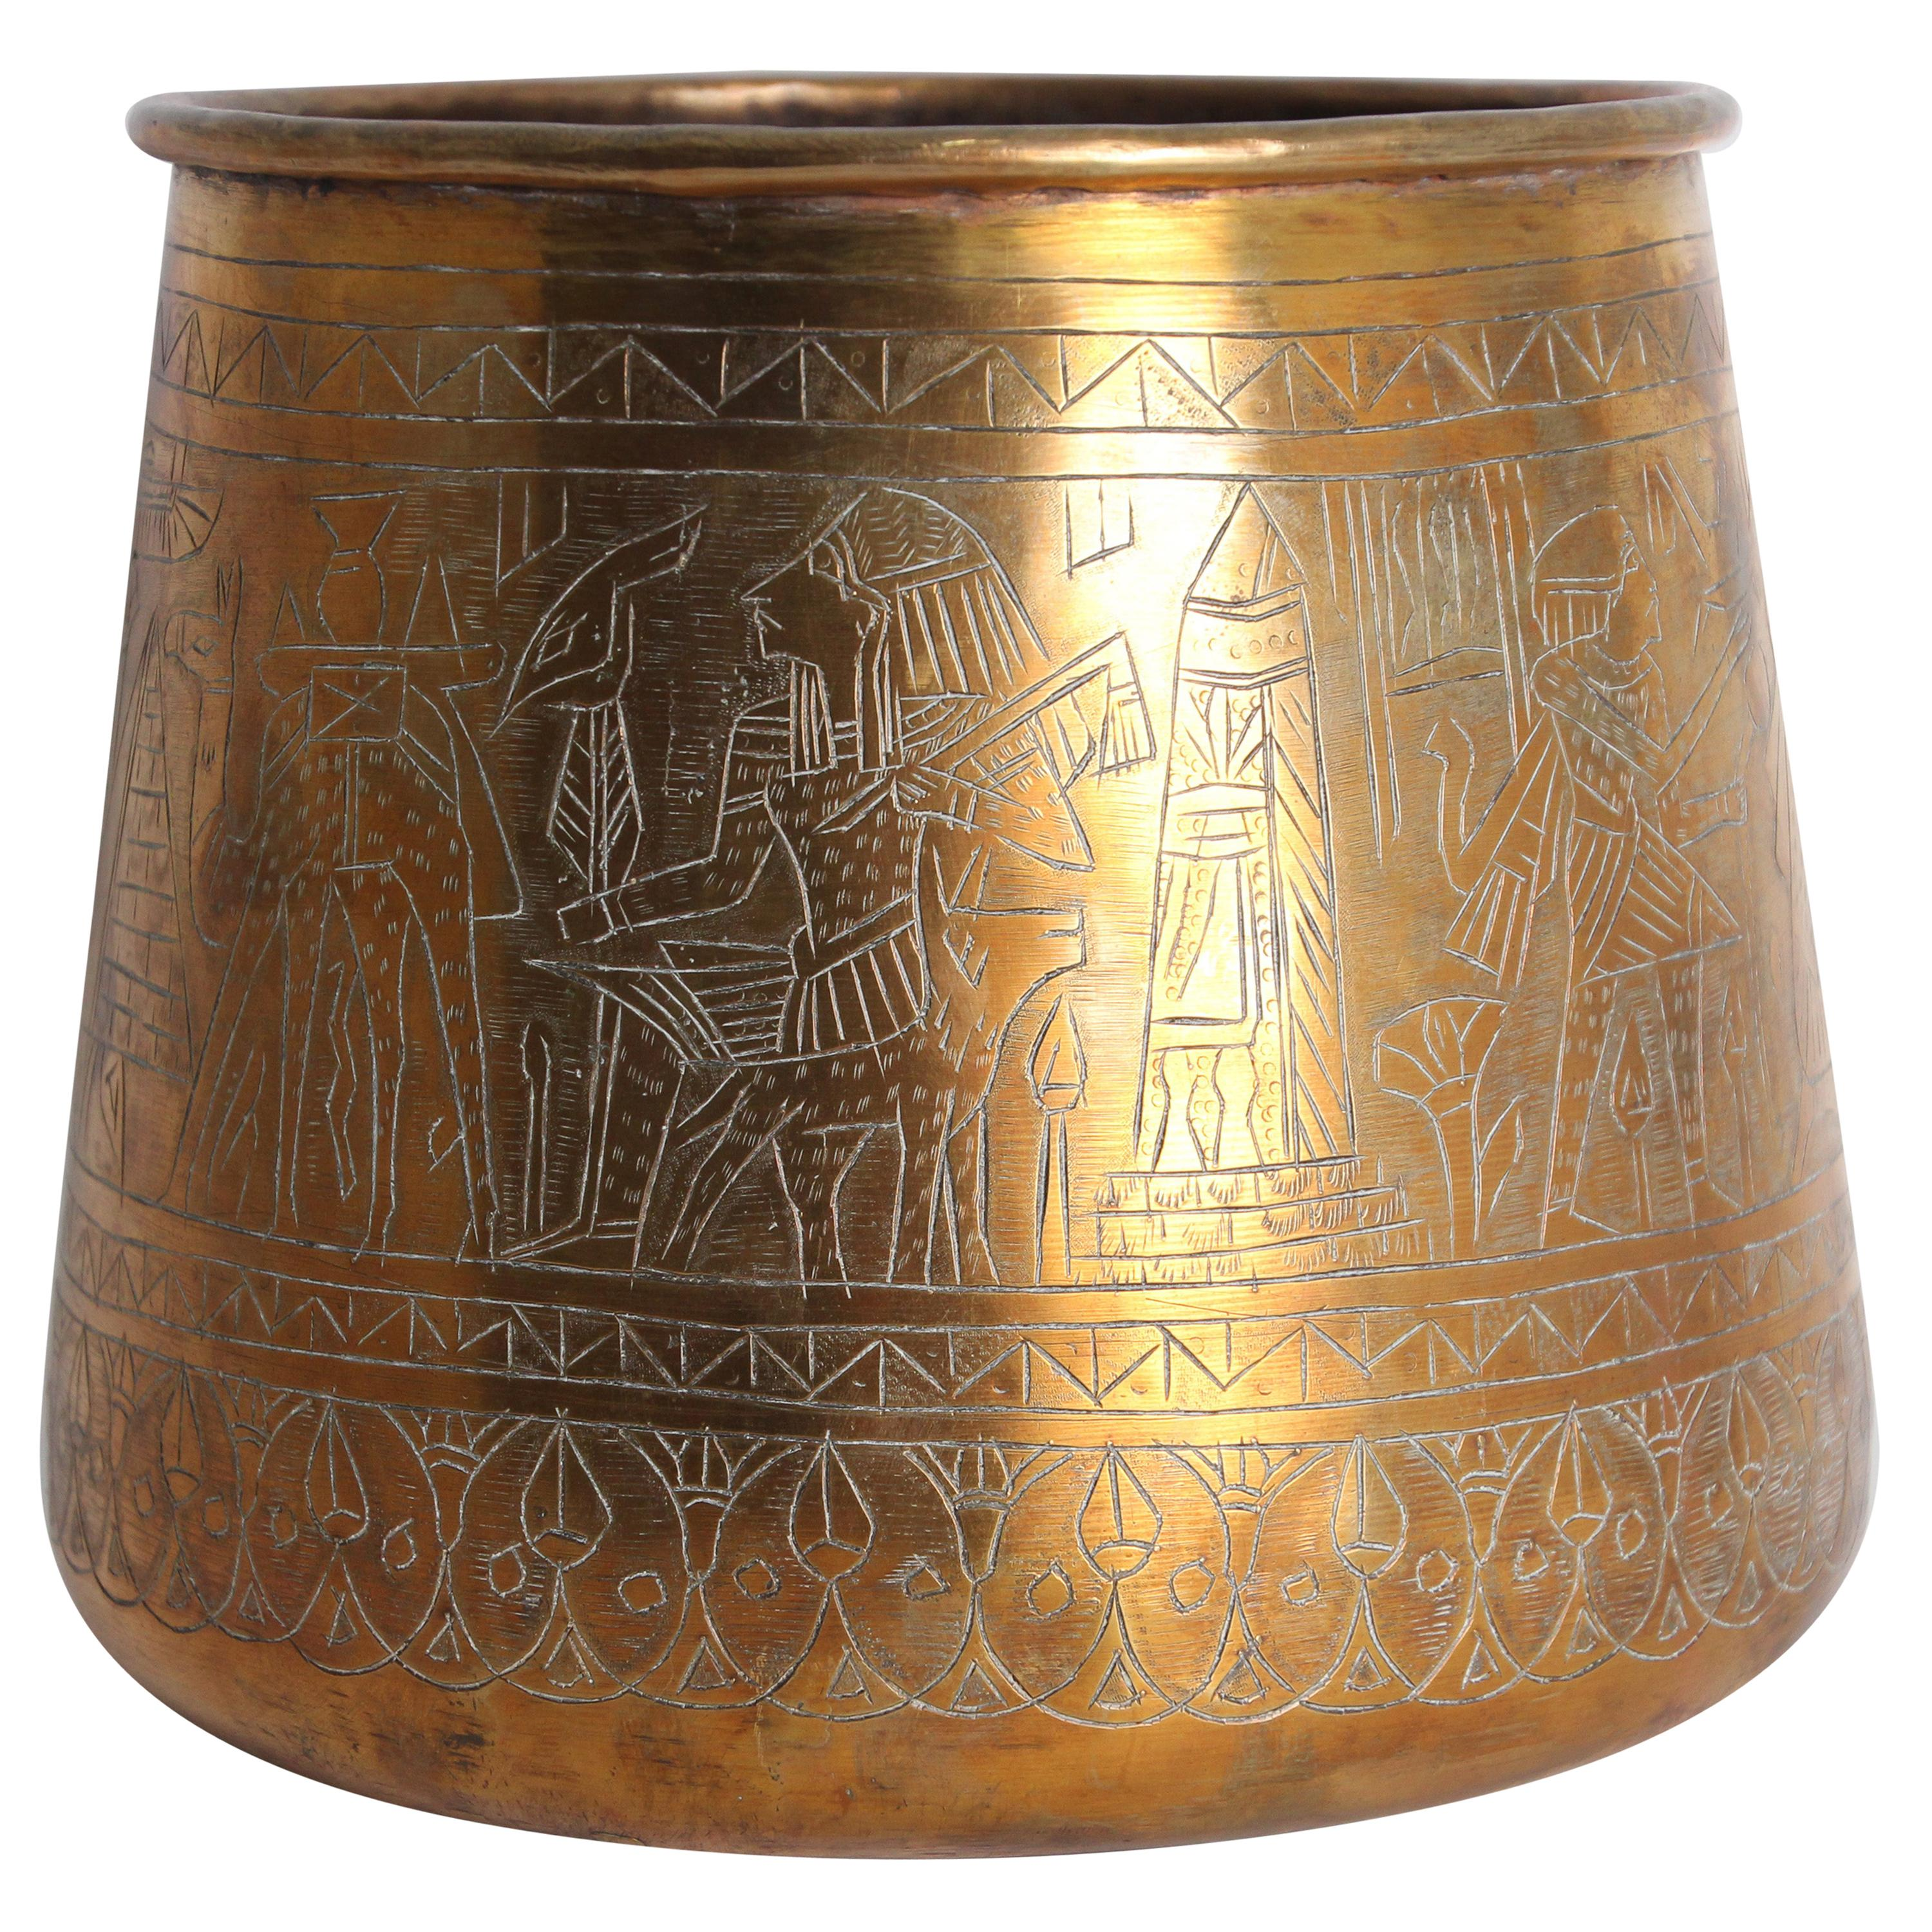 Hand Etched Egyptian Brass Vessel Jardiniere, 19th Century